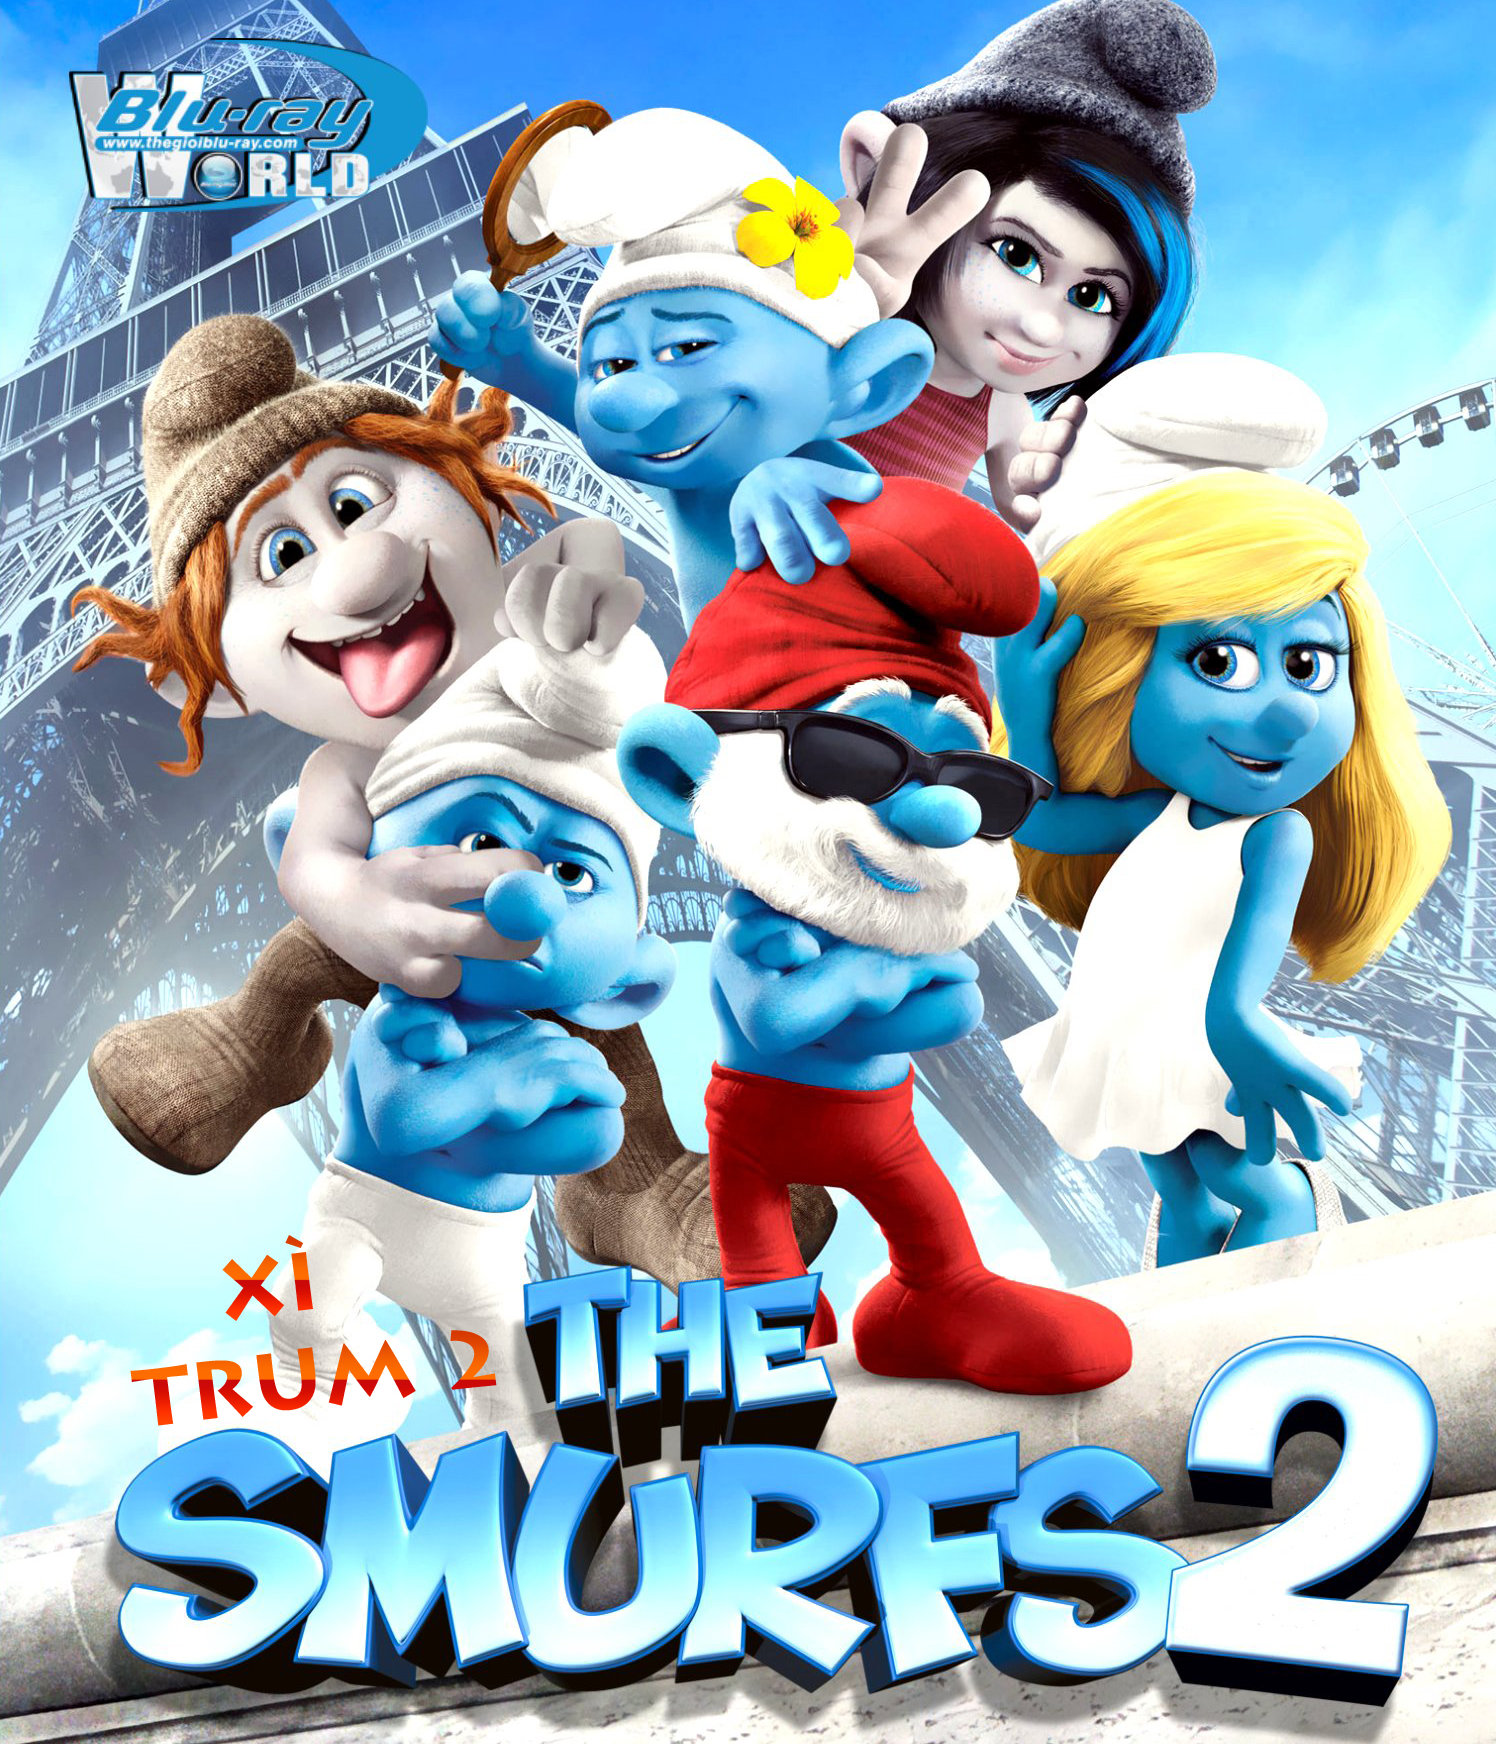 B1516. The Smurfs 2 - XÌ TRUM 2 2D 25G (DTS-HD MA 5.1)